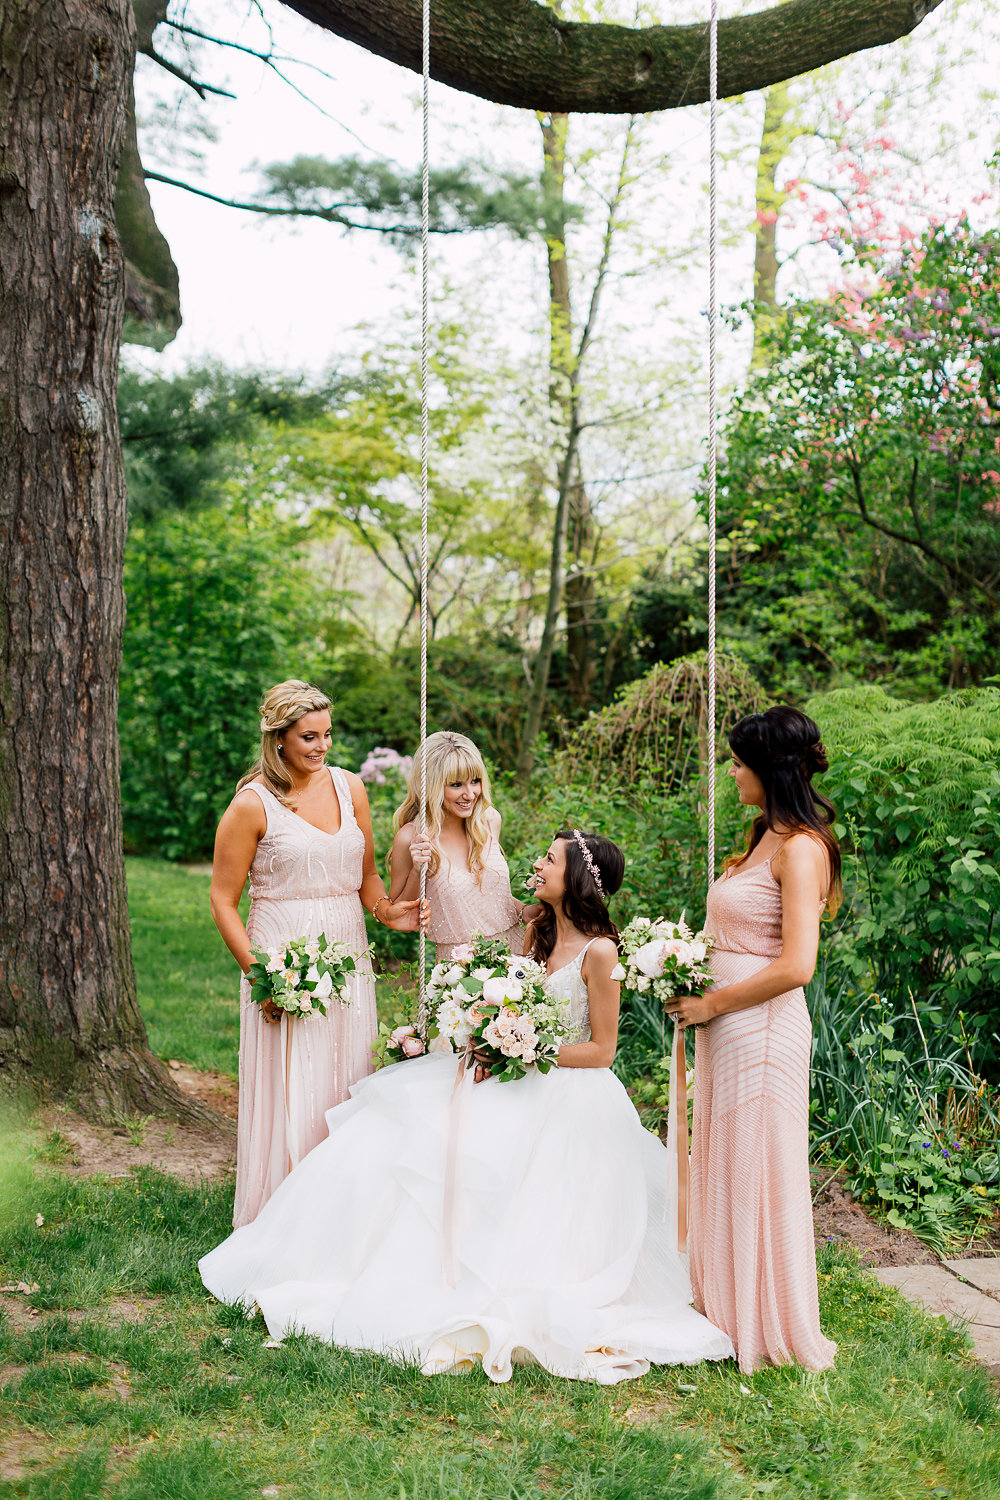 bride and bridesmaids - photo by Purple Tree Photography http://ruffledblog.com/charming-wine-country-wedding-at-kurtz-orchard